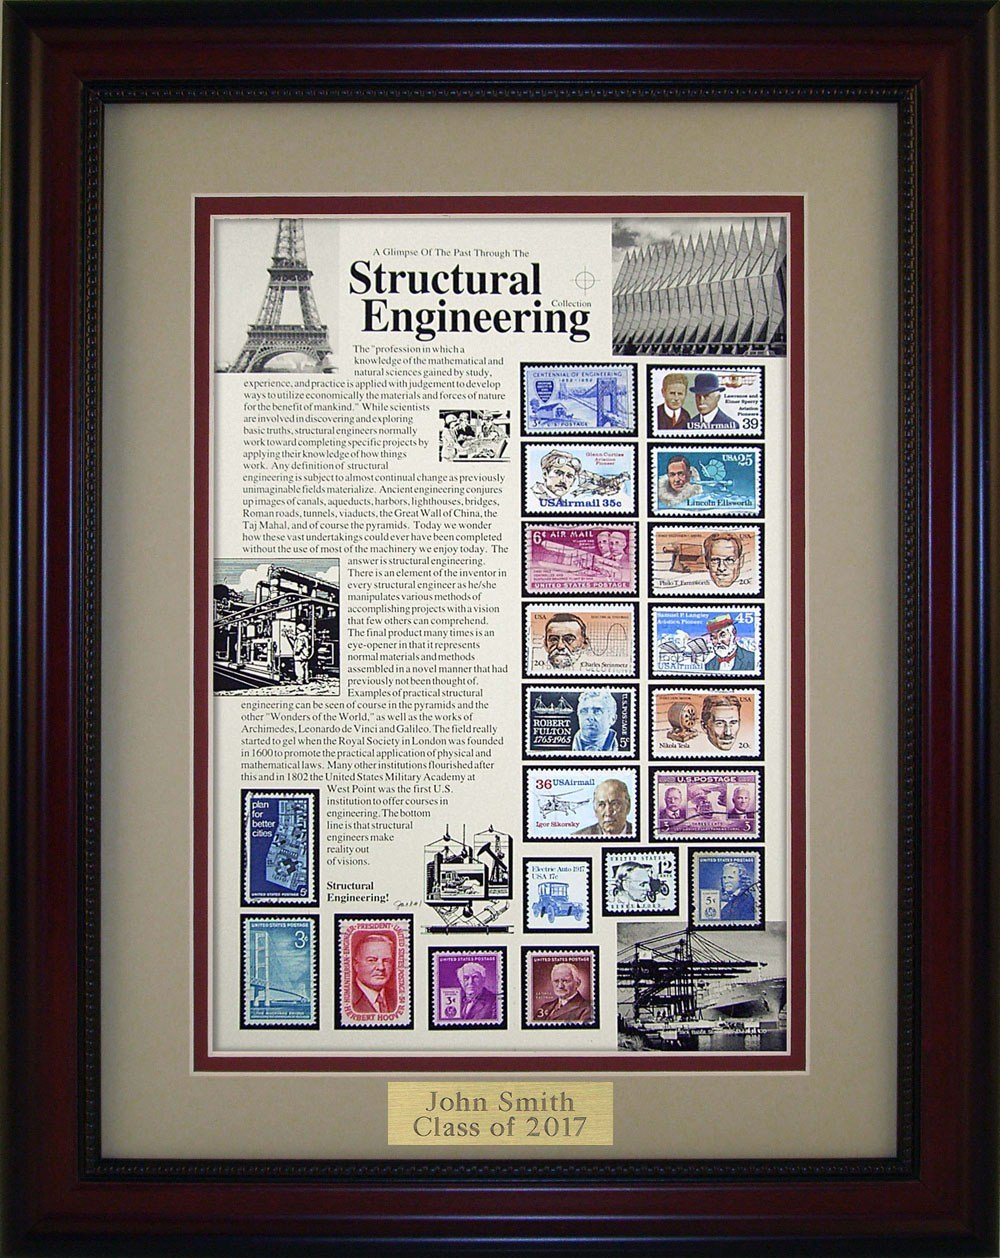 Structural Engineer - Unique Framed Collectible (A Great Gift Idea) with Personalized Engraved Plate